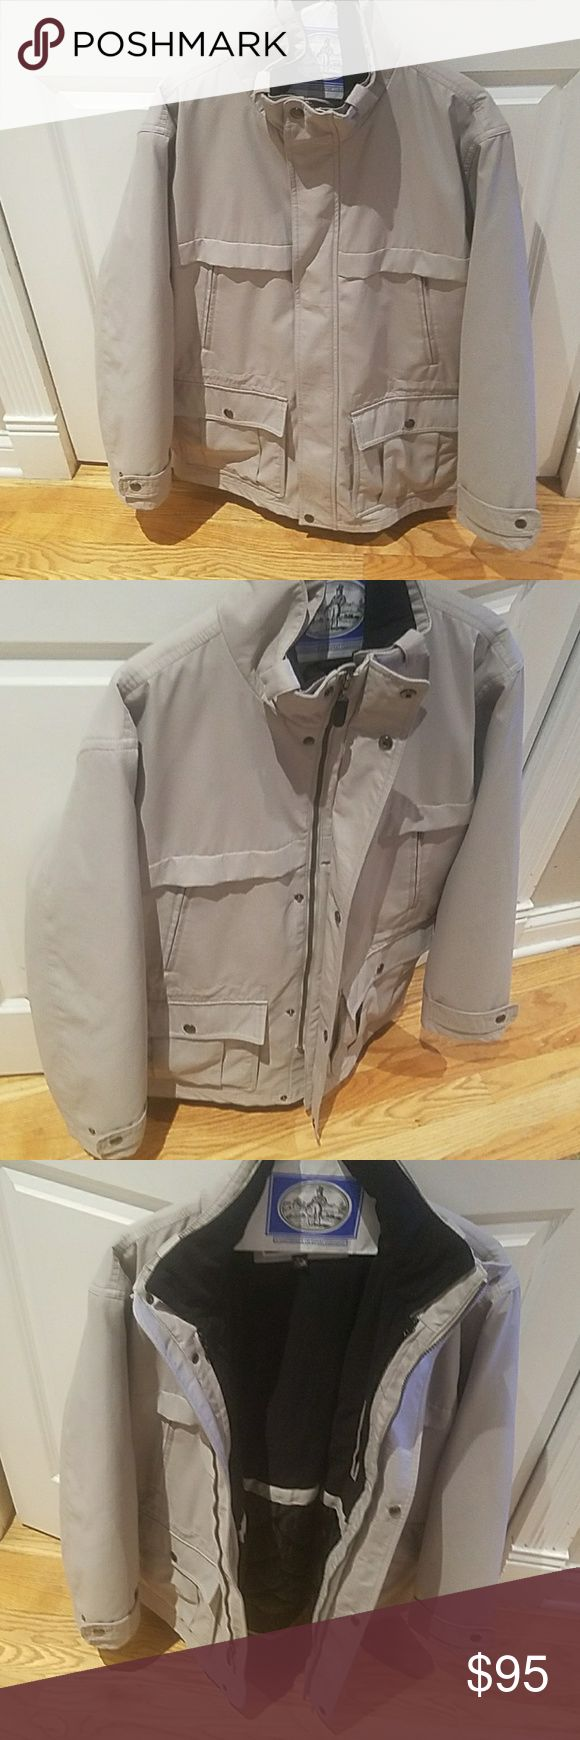 Mens Michael Kors Winter Jacket - Medium Amazing, Like New, Michael Kors Winter Jacket - Medium. (I'm typically a large and it fits perfect) Its a tan shade, in excellent condition. Ive worn it maybe 5 times. Six exterior pockets.   Has a liner for warmth that can be unzipped and removed.   Great deal, make an offer! Michael Kors Jackets & Coats